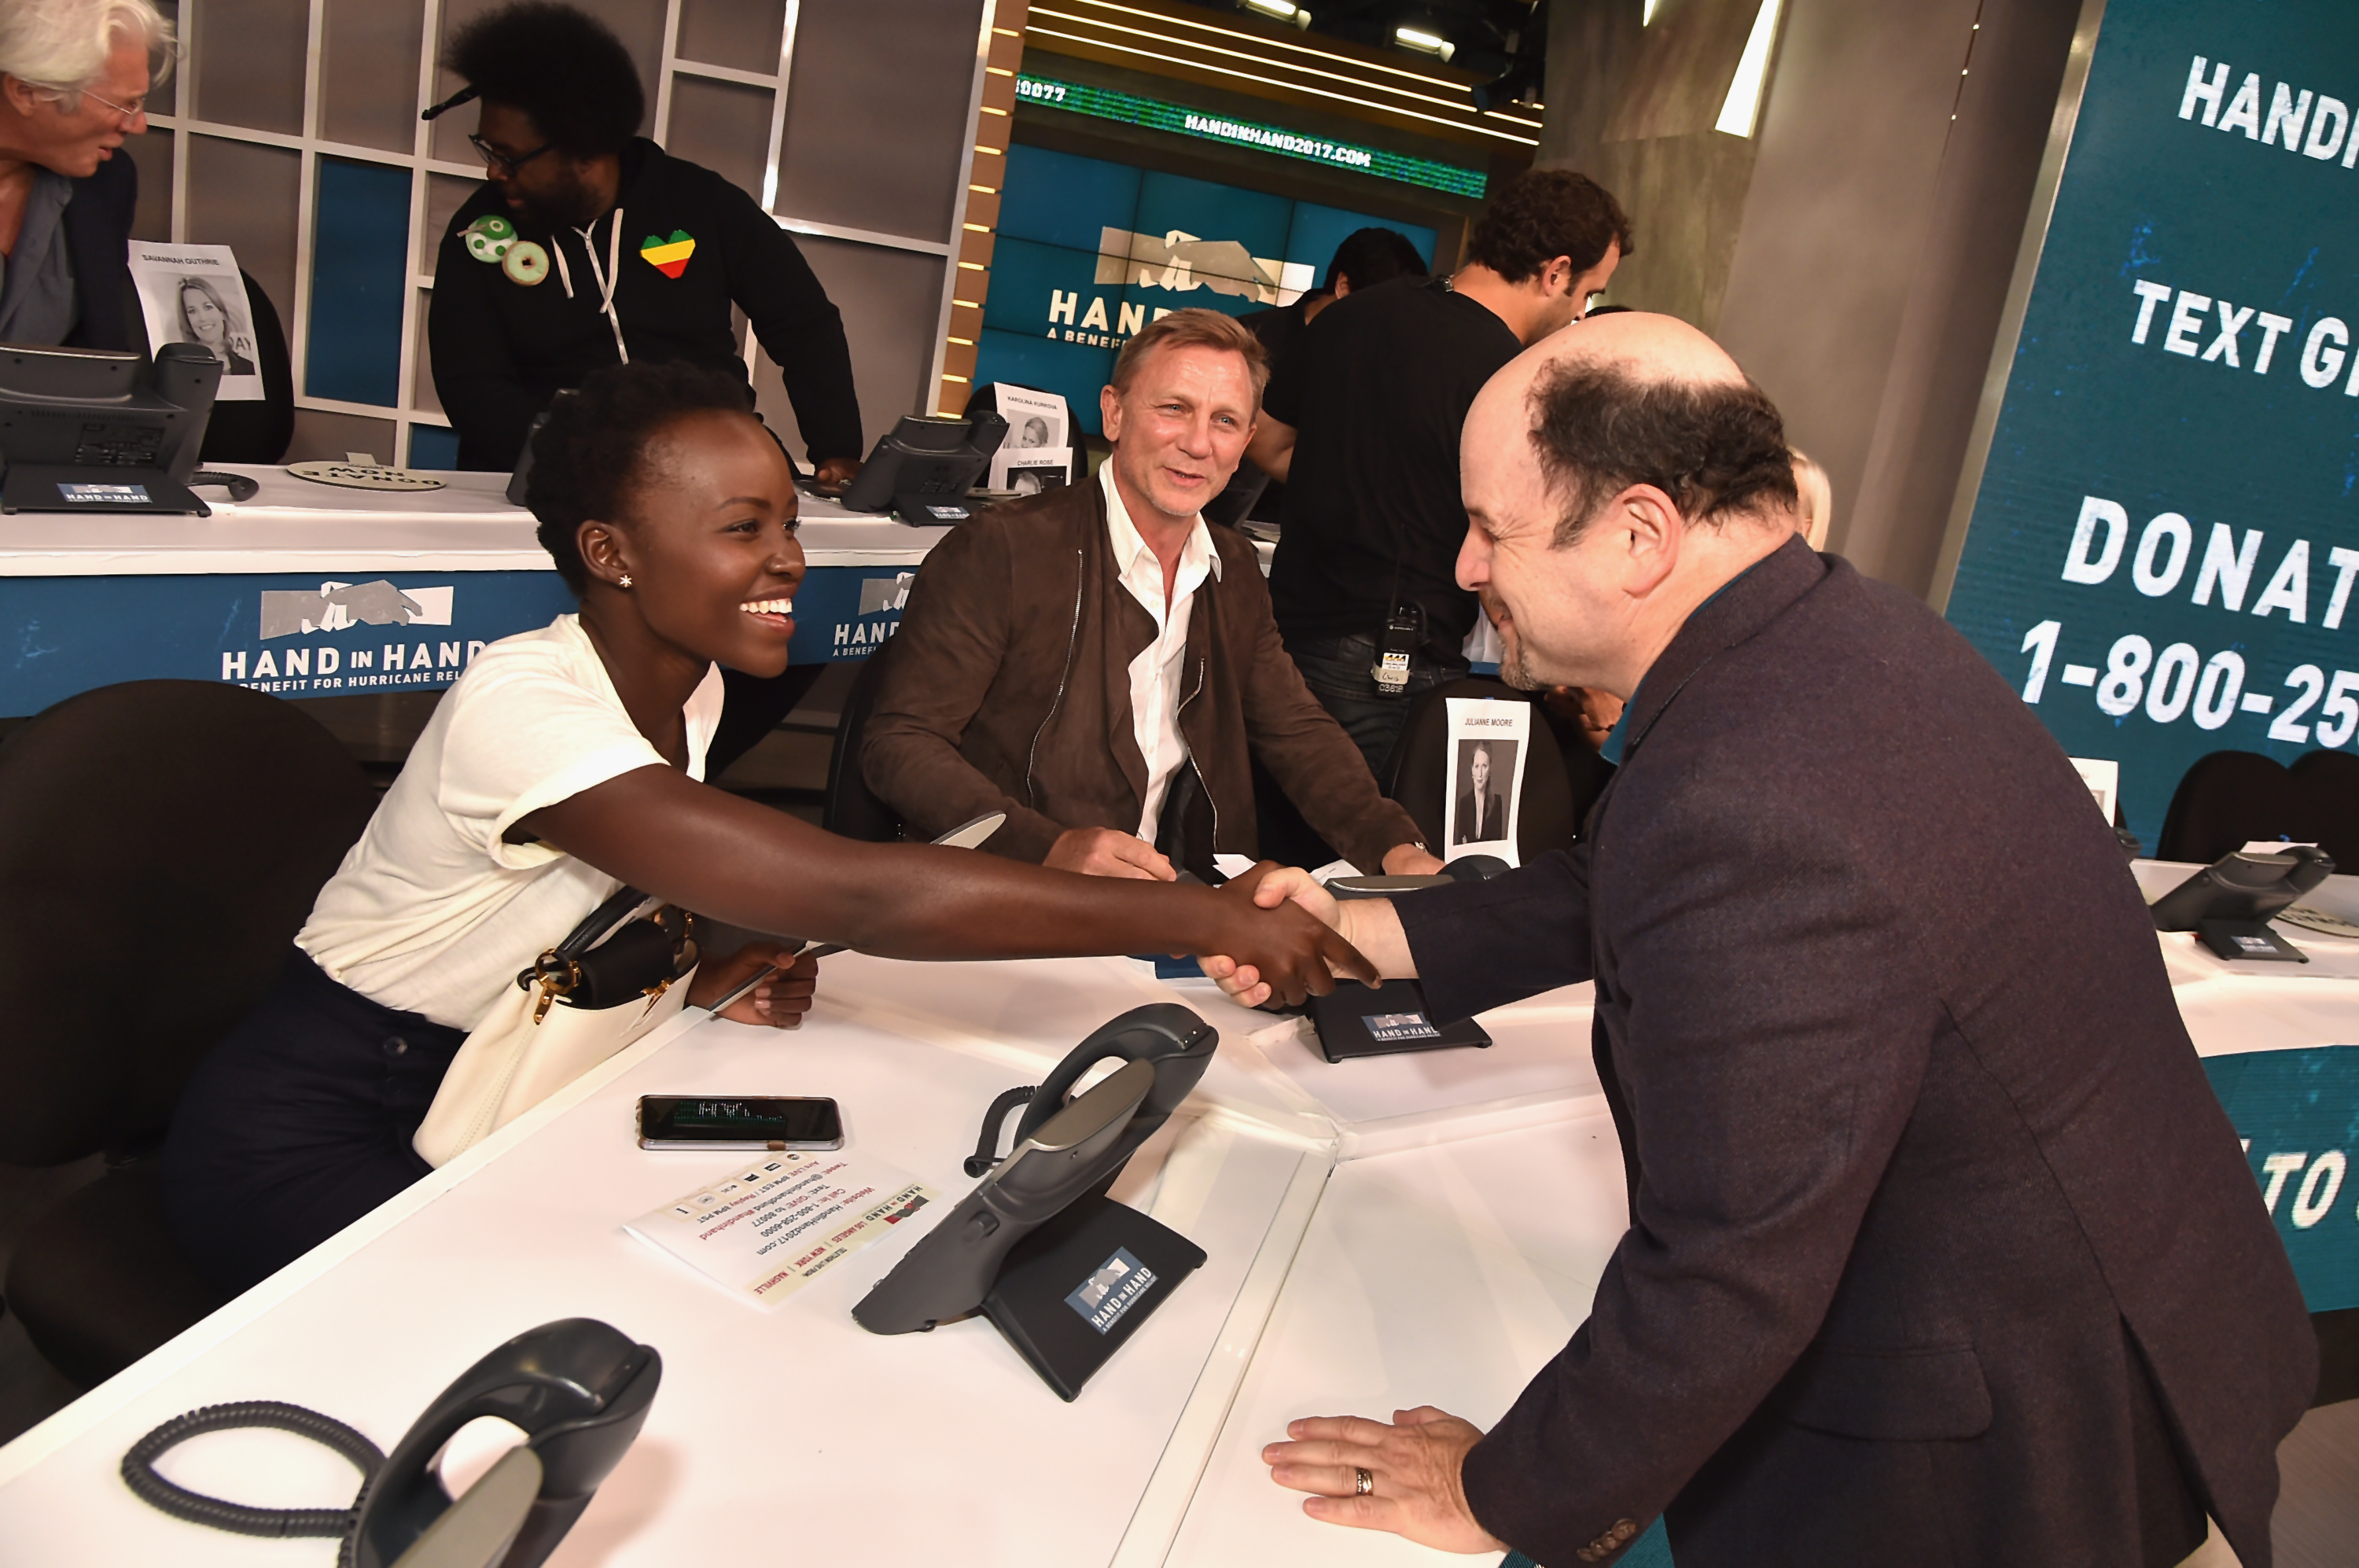 "<div class=""meta image-caption""><div class=""origin-logo origin-image none""><span>none</span></div><span class=""caption-text"">Lupita Nyong'o, Daniel Craig and Jason Alexander  attend the Hand in Hand benefit at ABC News' Good Morning America Times Square Studio on Sept. 12 in New York City. (Theo Wargo/Hand in Hand/Getty Images)</span></div>"